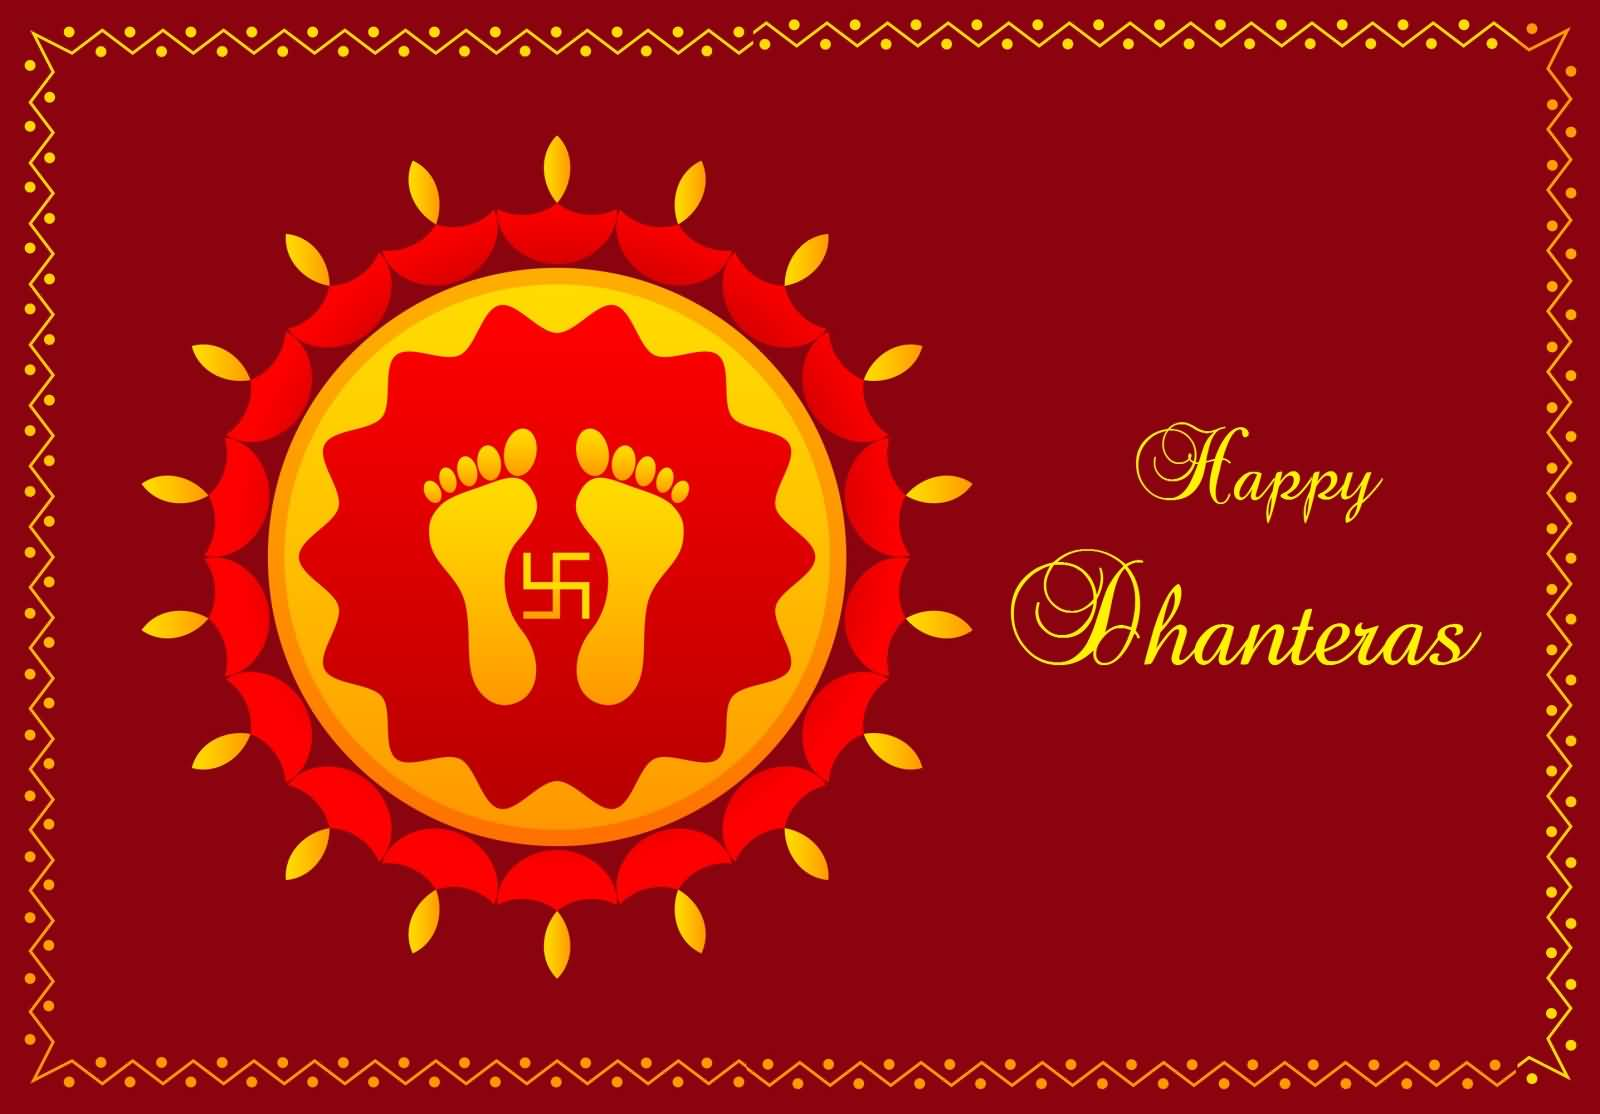 Happy Diwali And Dhanteras Wallpapers: Dhanteras May God Kuber Will Fulfill Your All Wishes